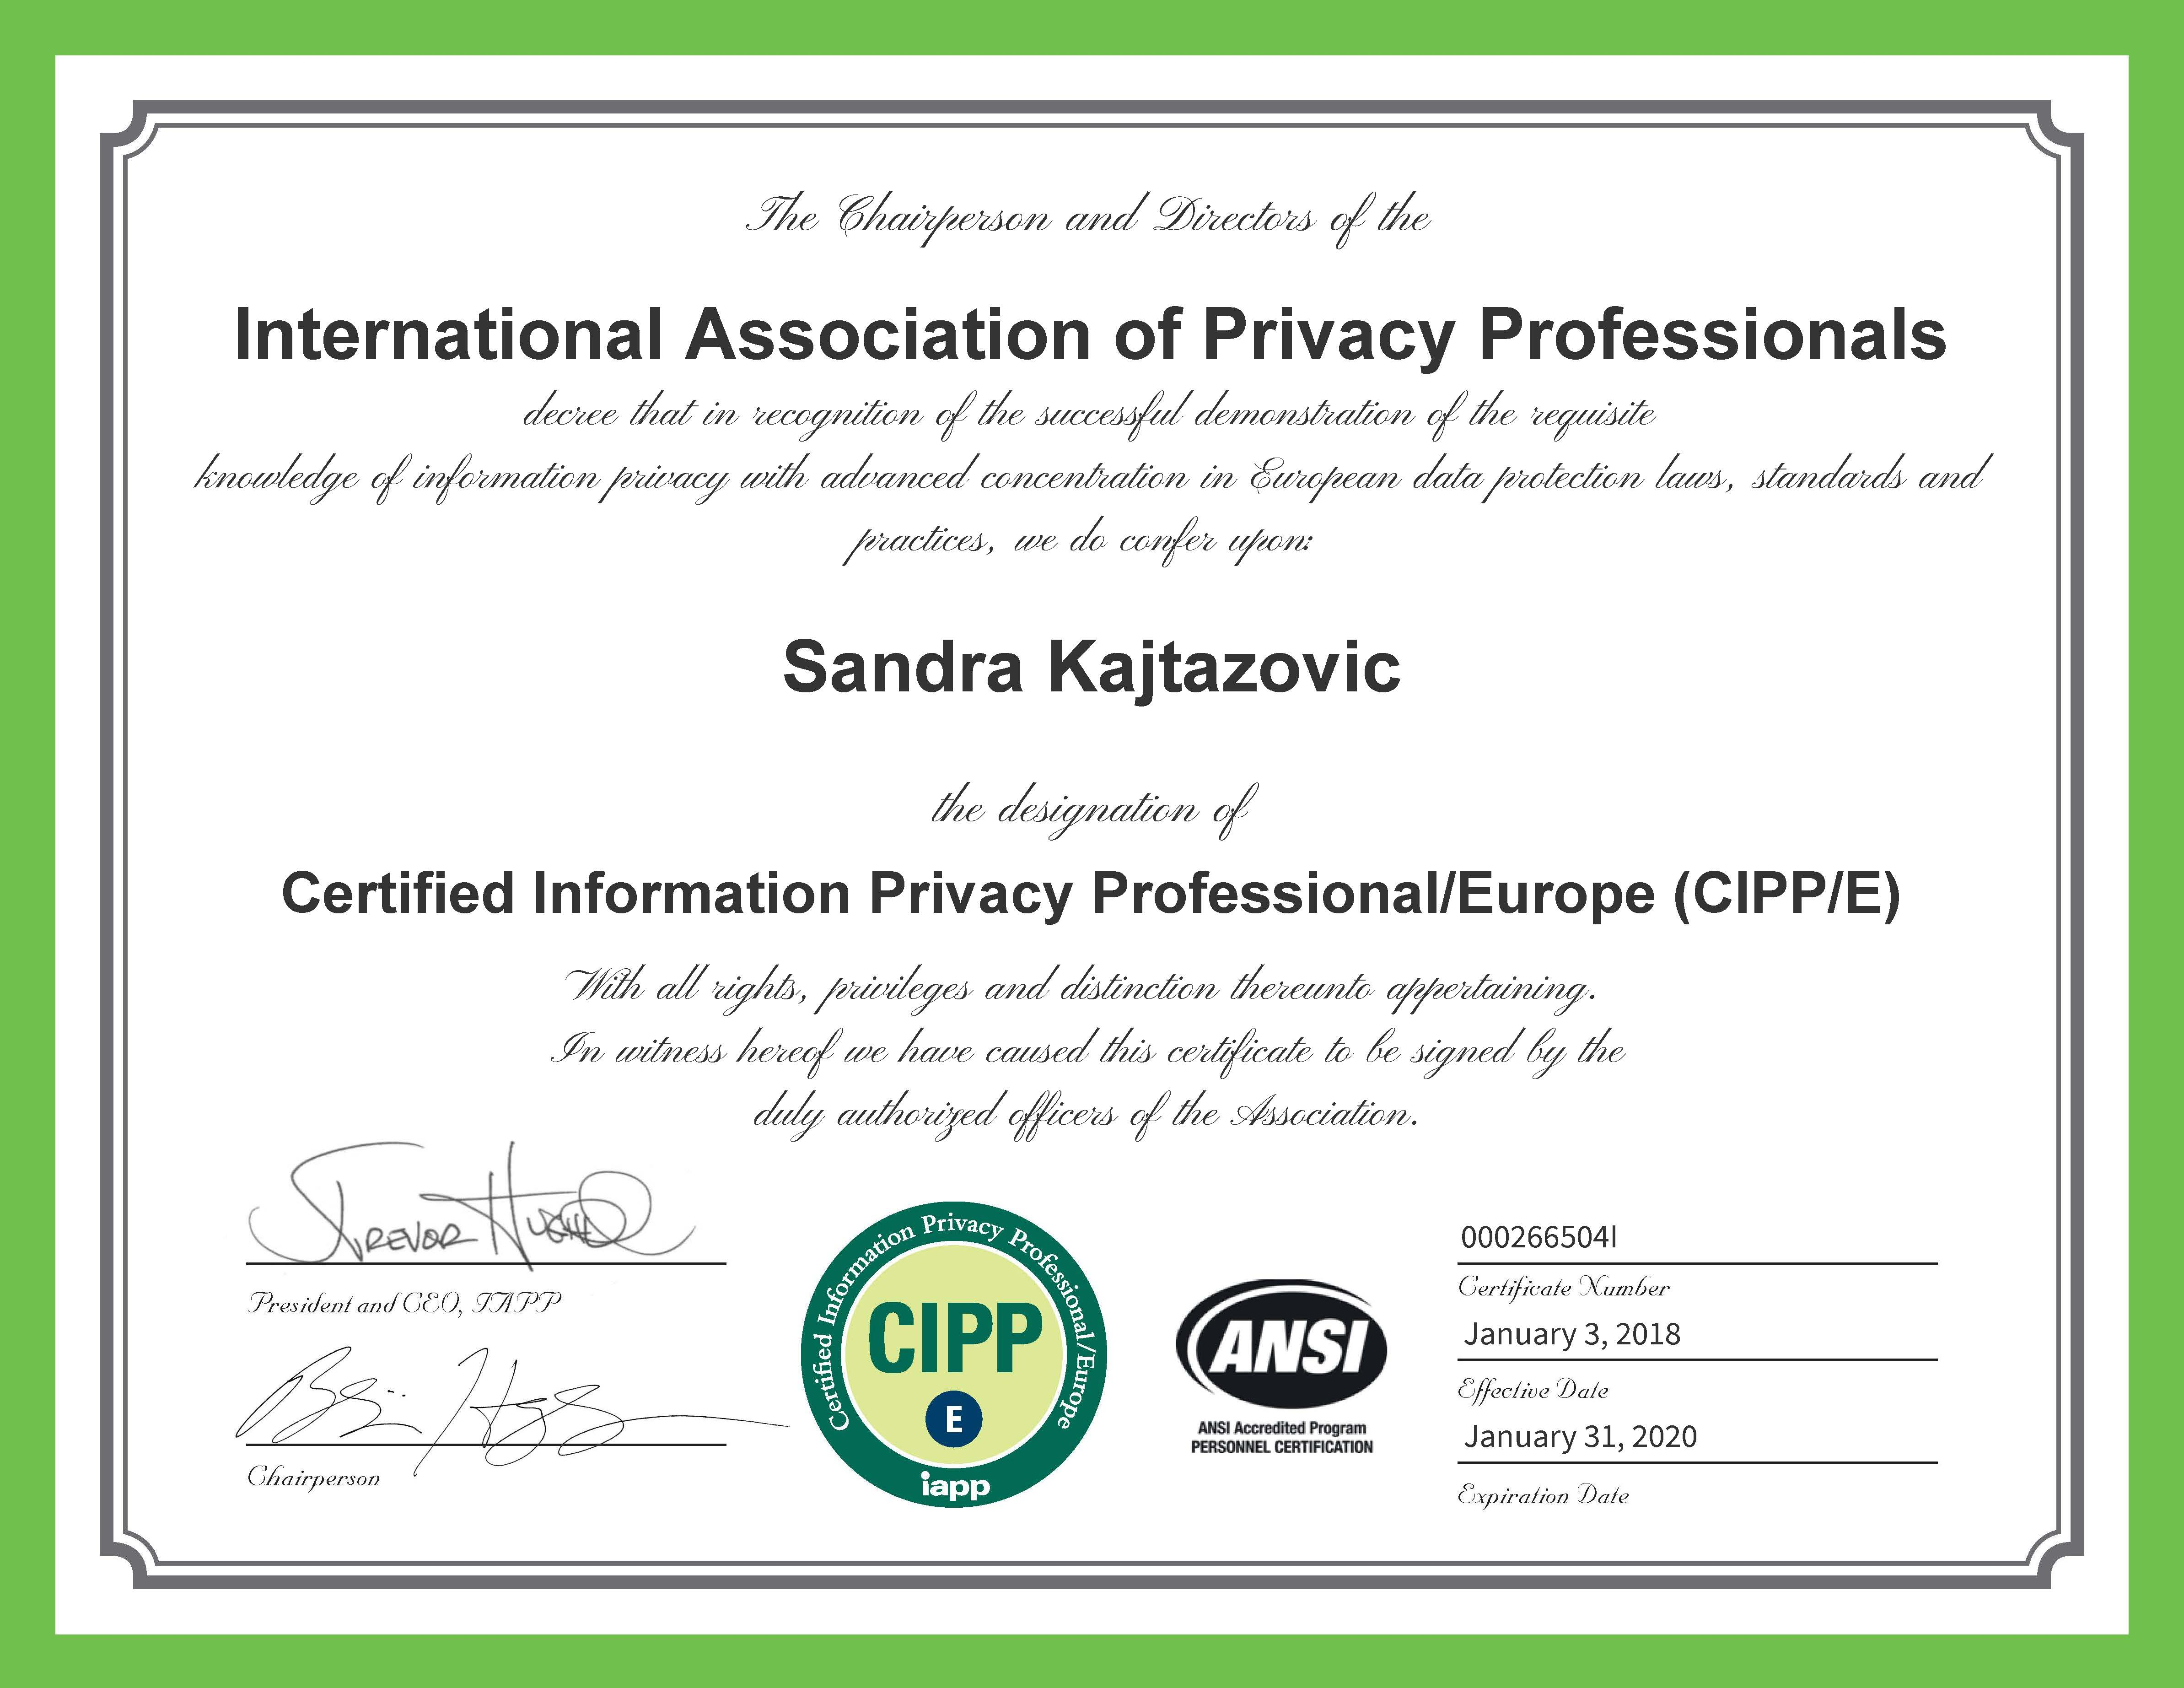 Certified Information Privacy Professional / Europe